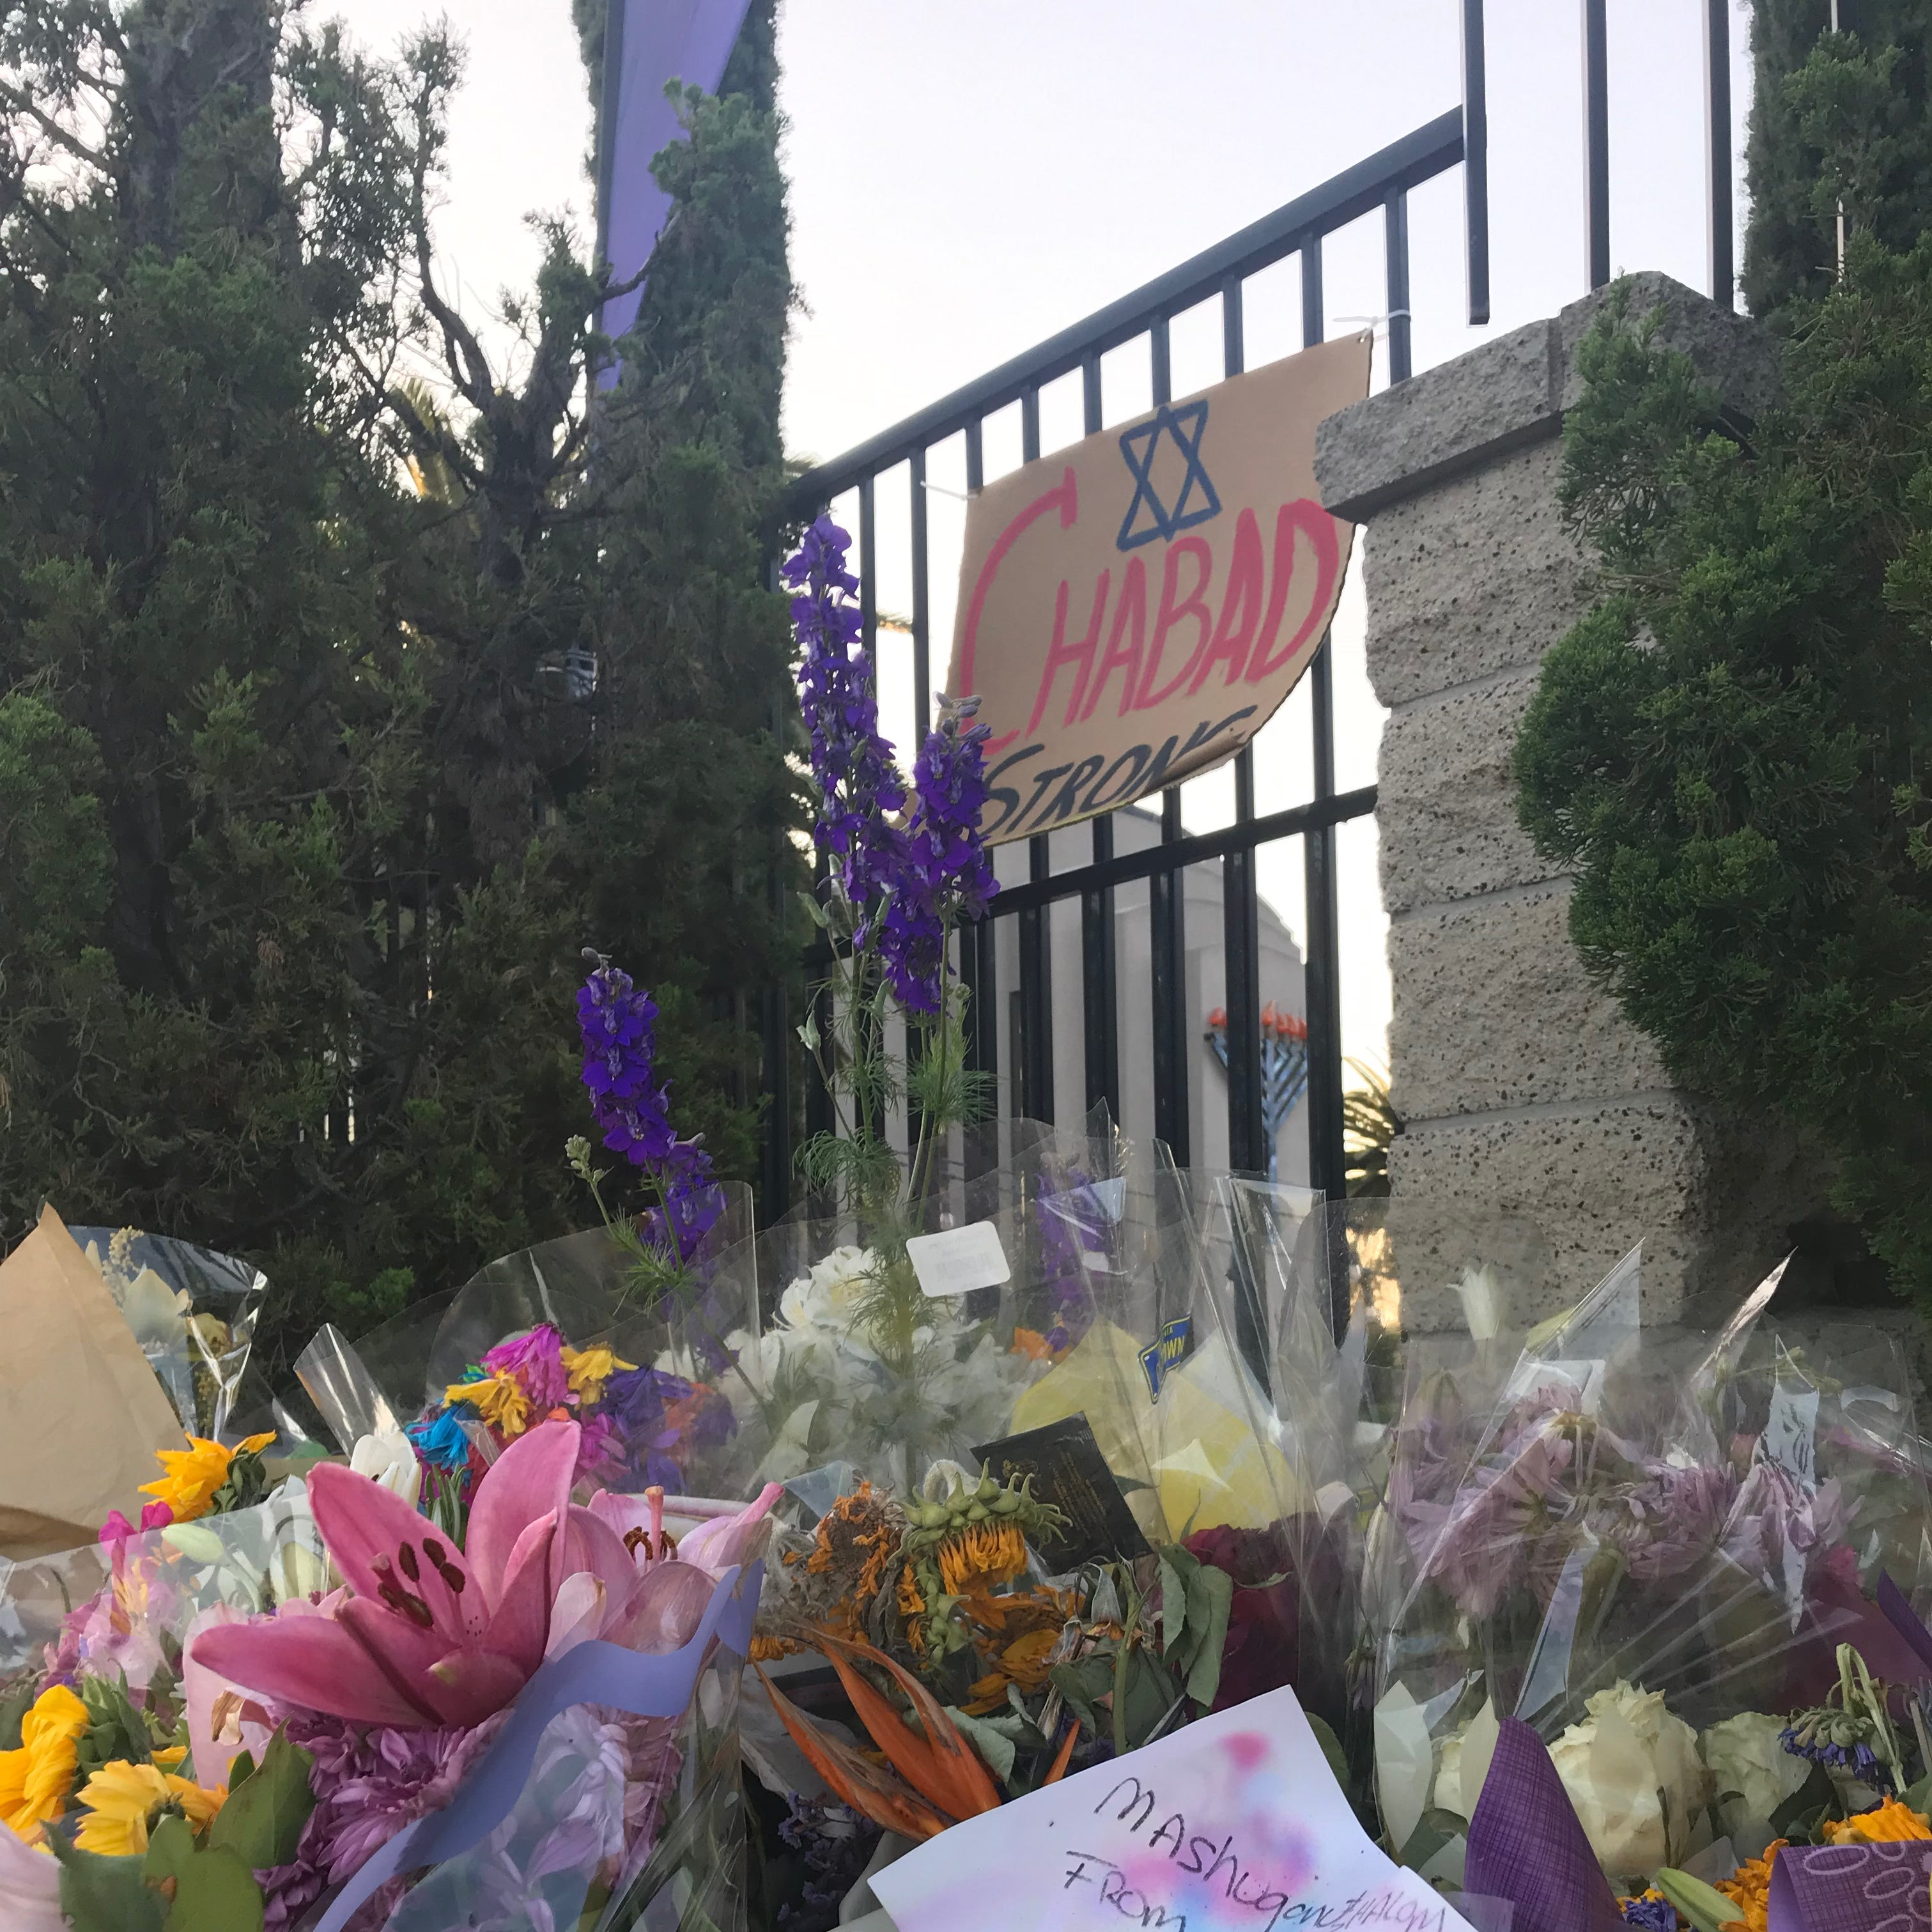 A Presbyterian pastor reckons with the Chabad Poway Synagogue shooting